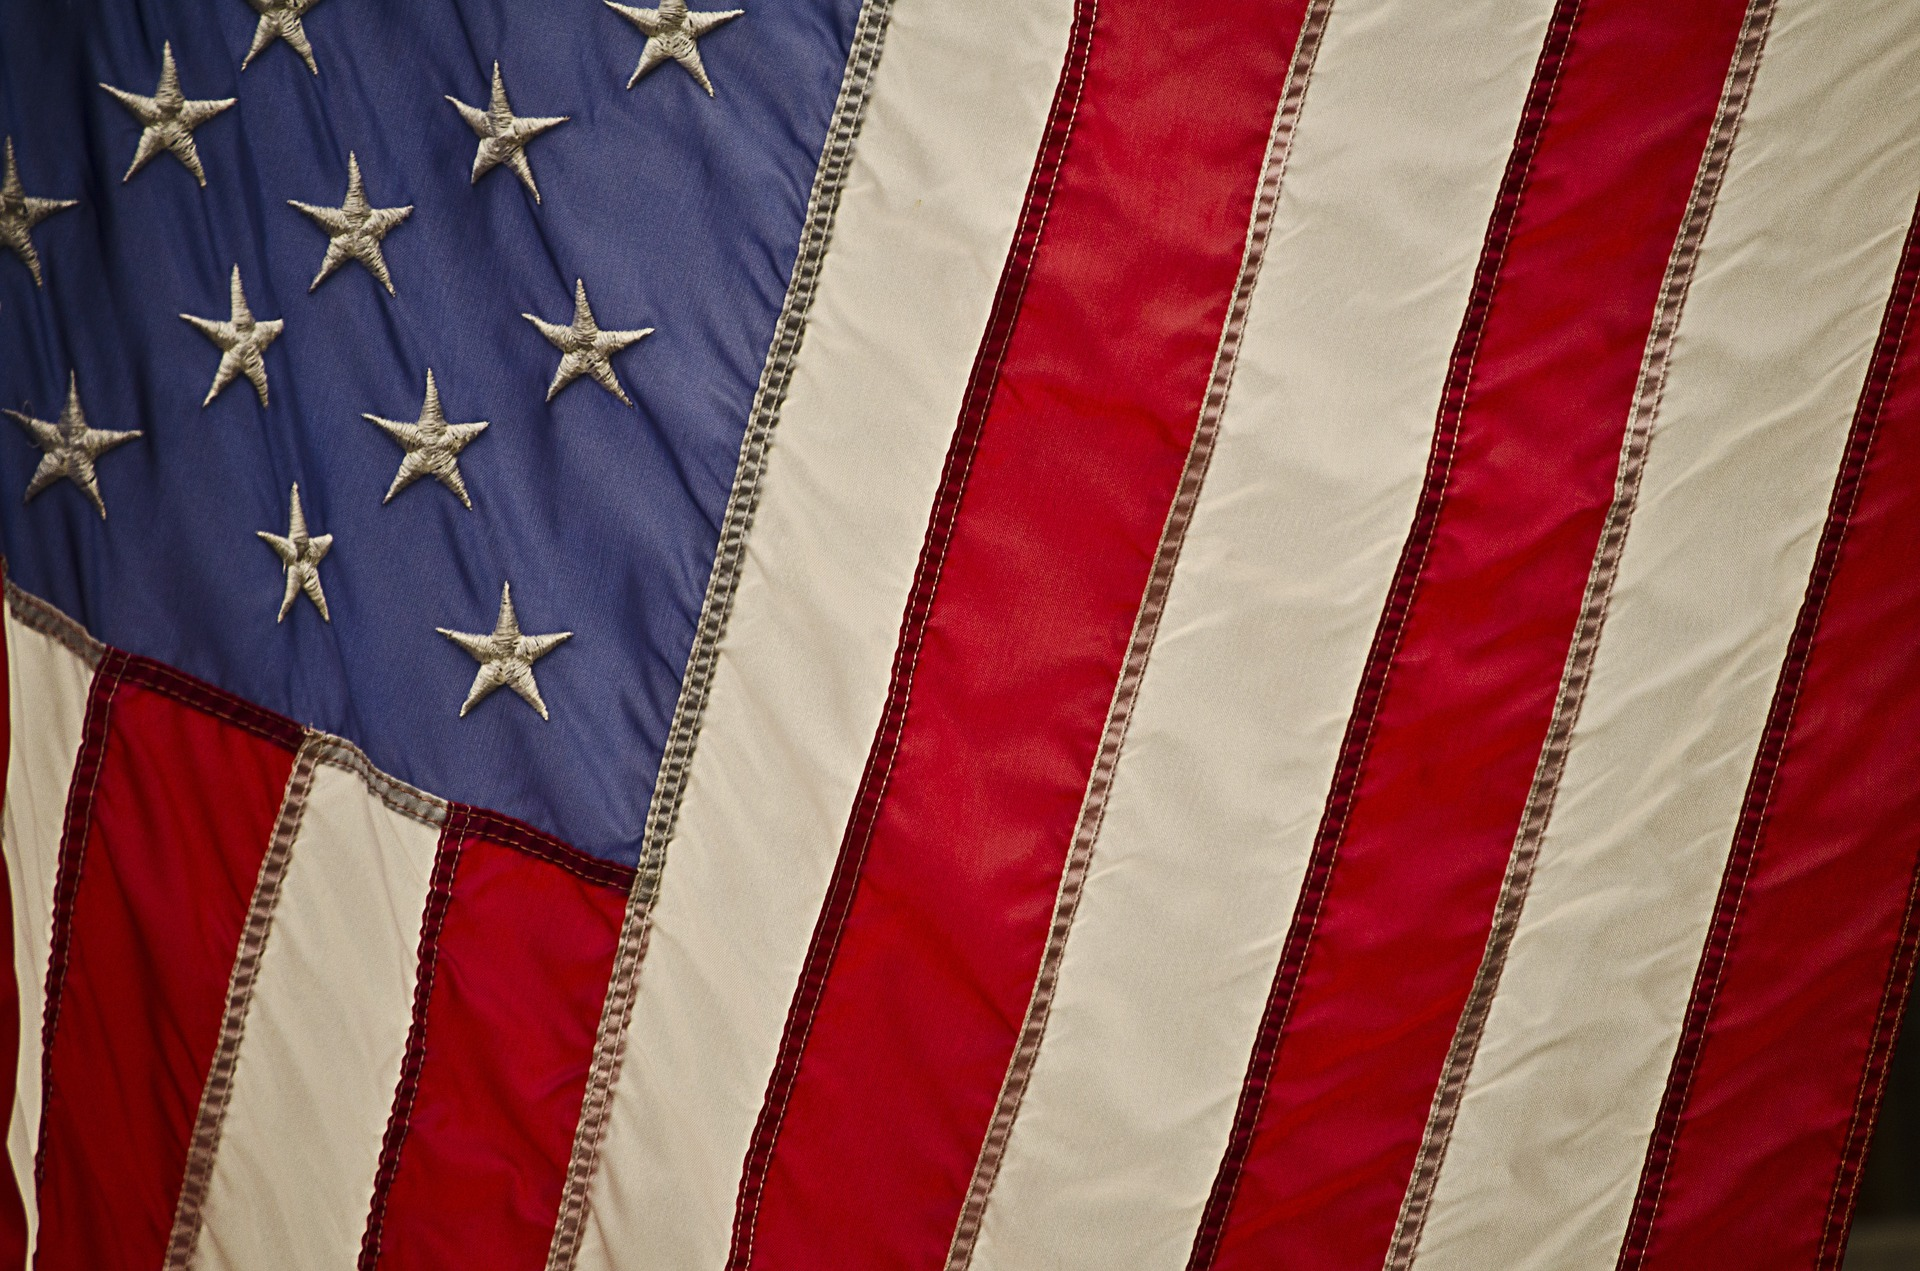 US flag for Greg Laurie's 4th of July blog